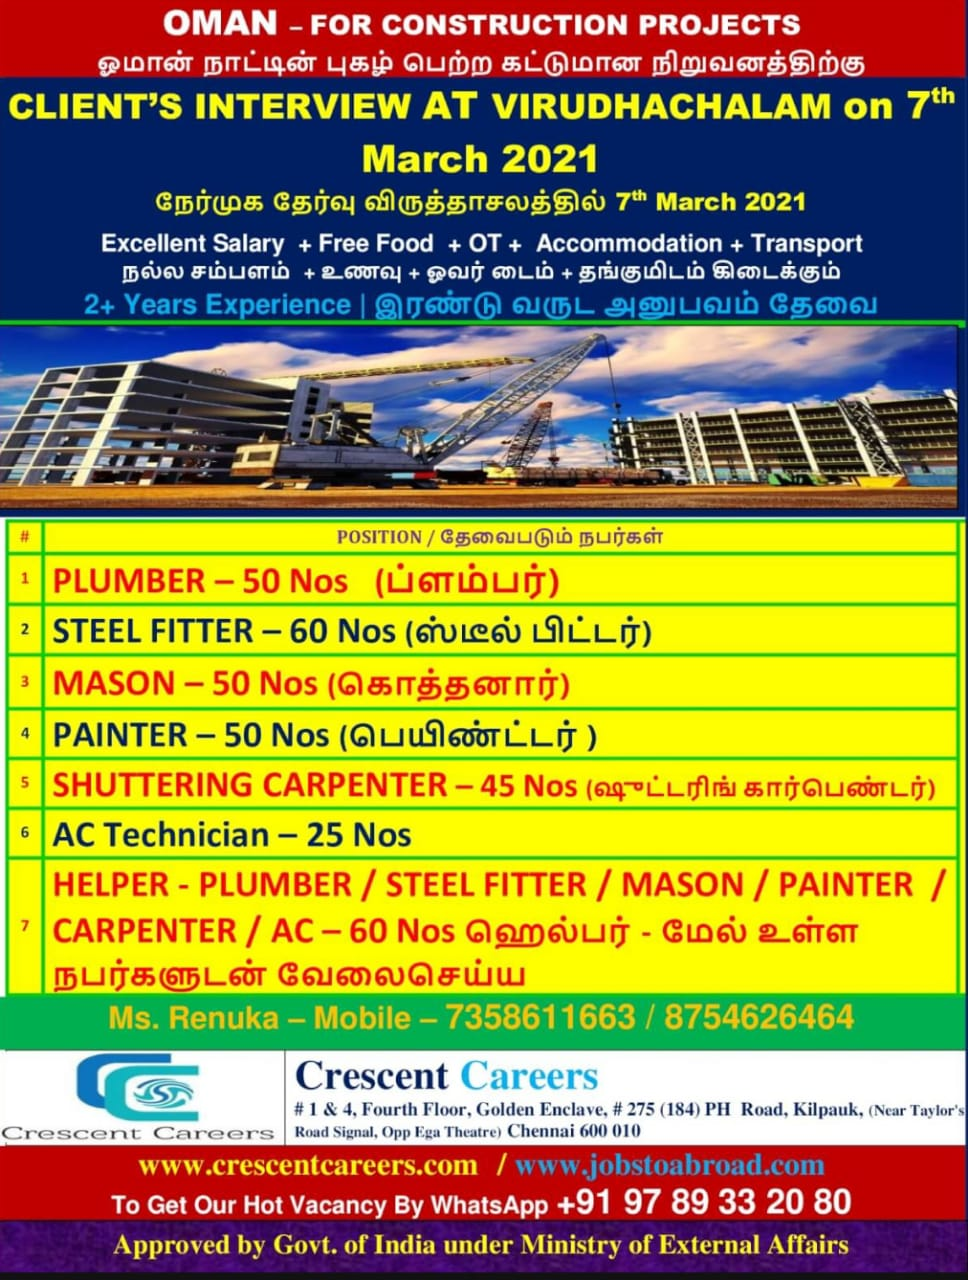 REQUIRED FOR A LEADING CONSTRUCTION PROJECTS-OMAN